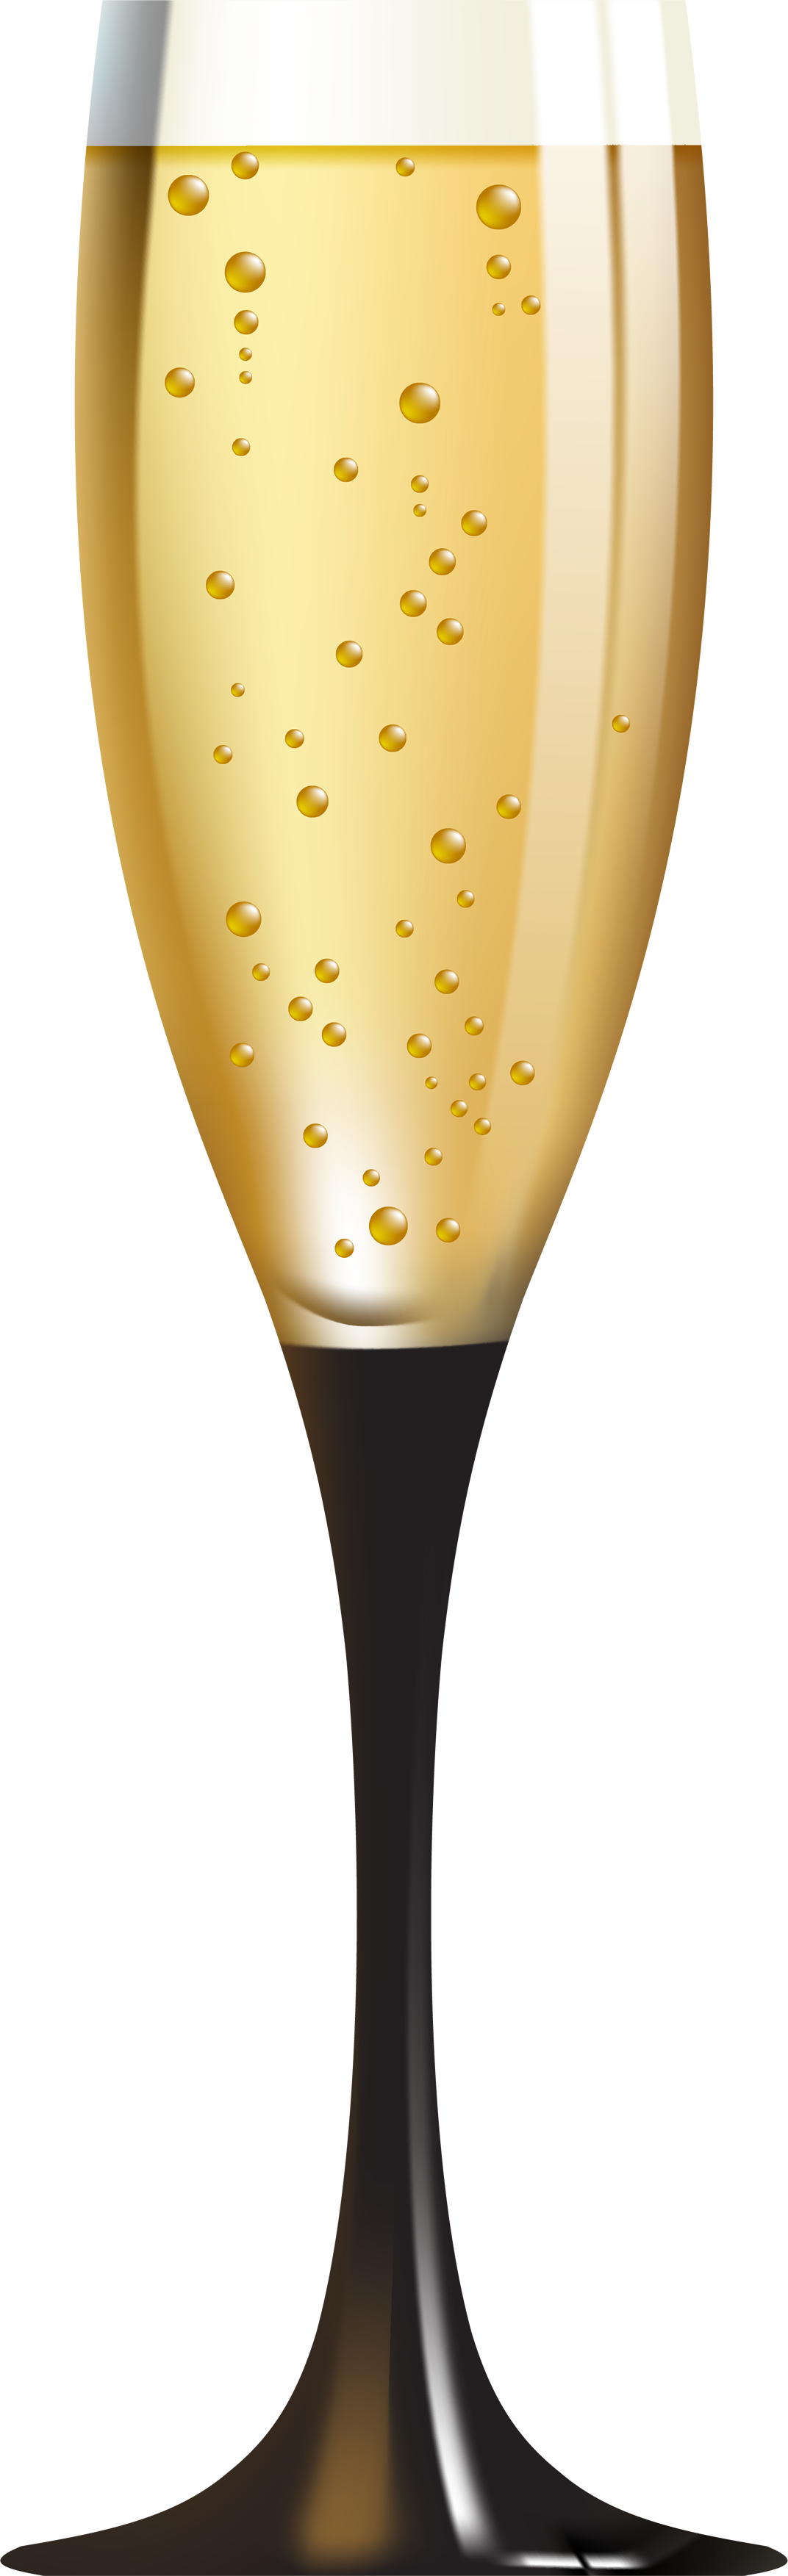 png library download Champagne clipart. Png images bottle glass